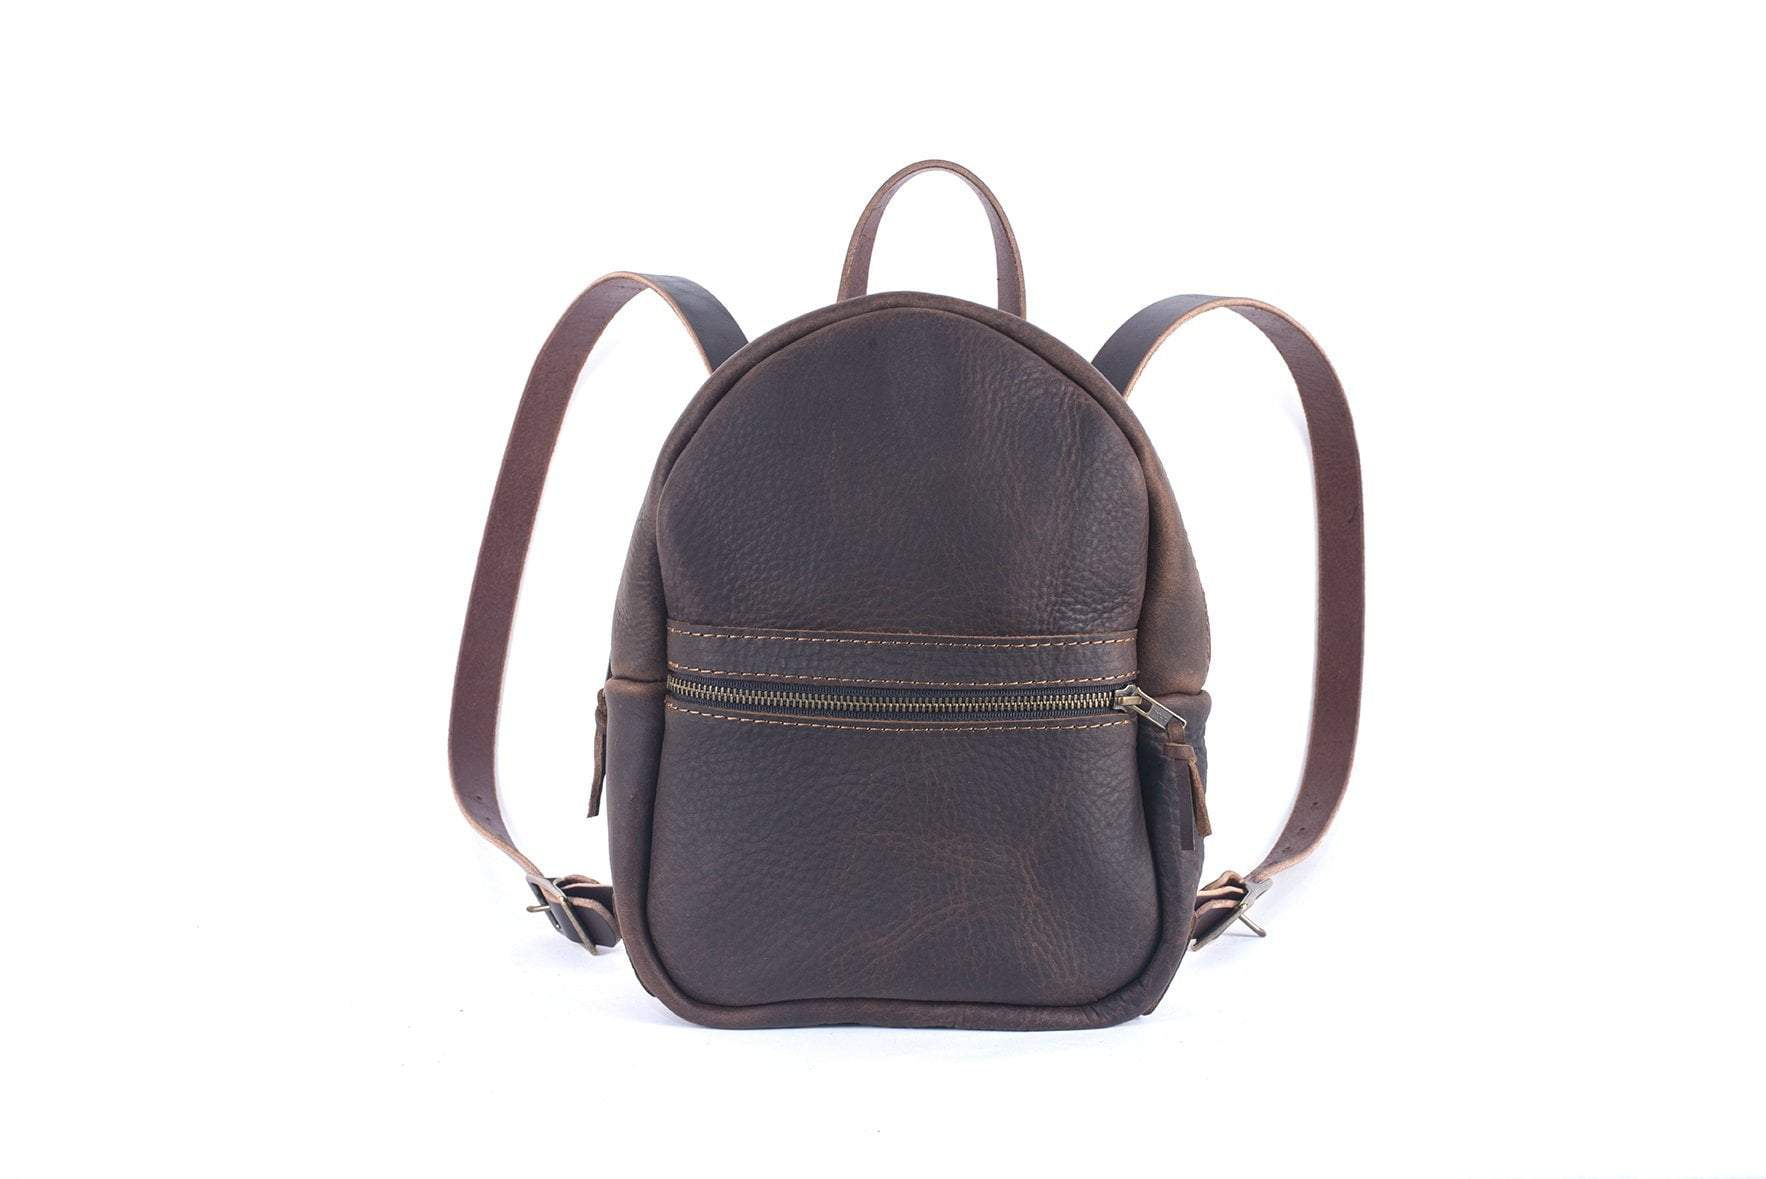 ac6cd51af1 CLASSIC ZIPPERED SMALL LEATHER BACKPACK PURSE - Go Forth Goods